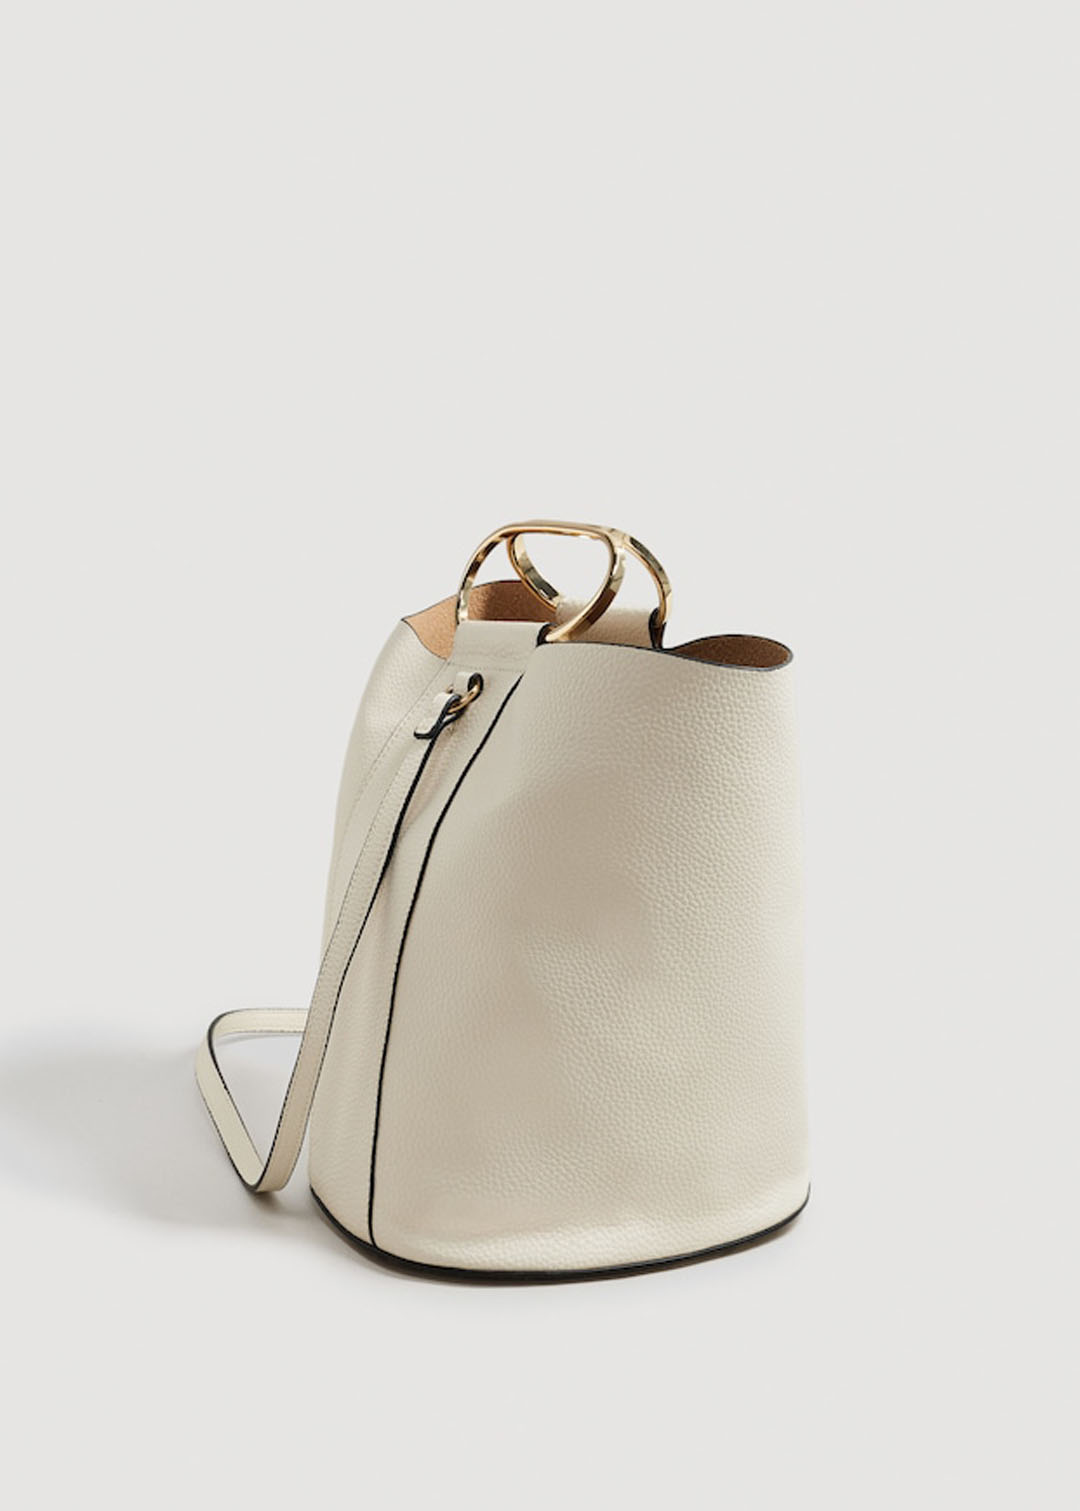 Mango white bucket bag